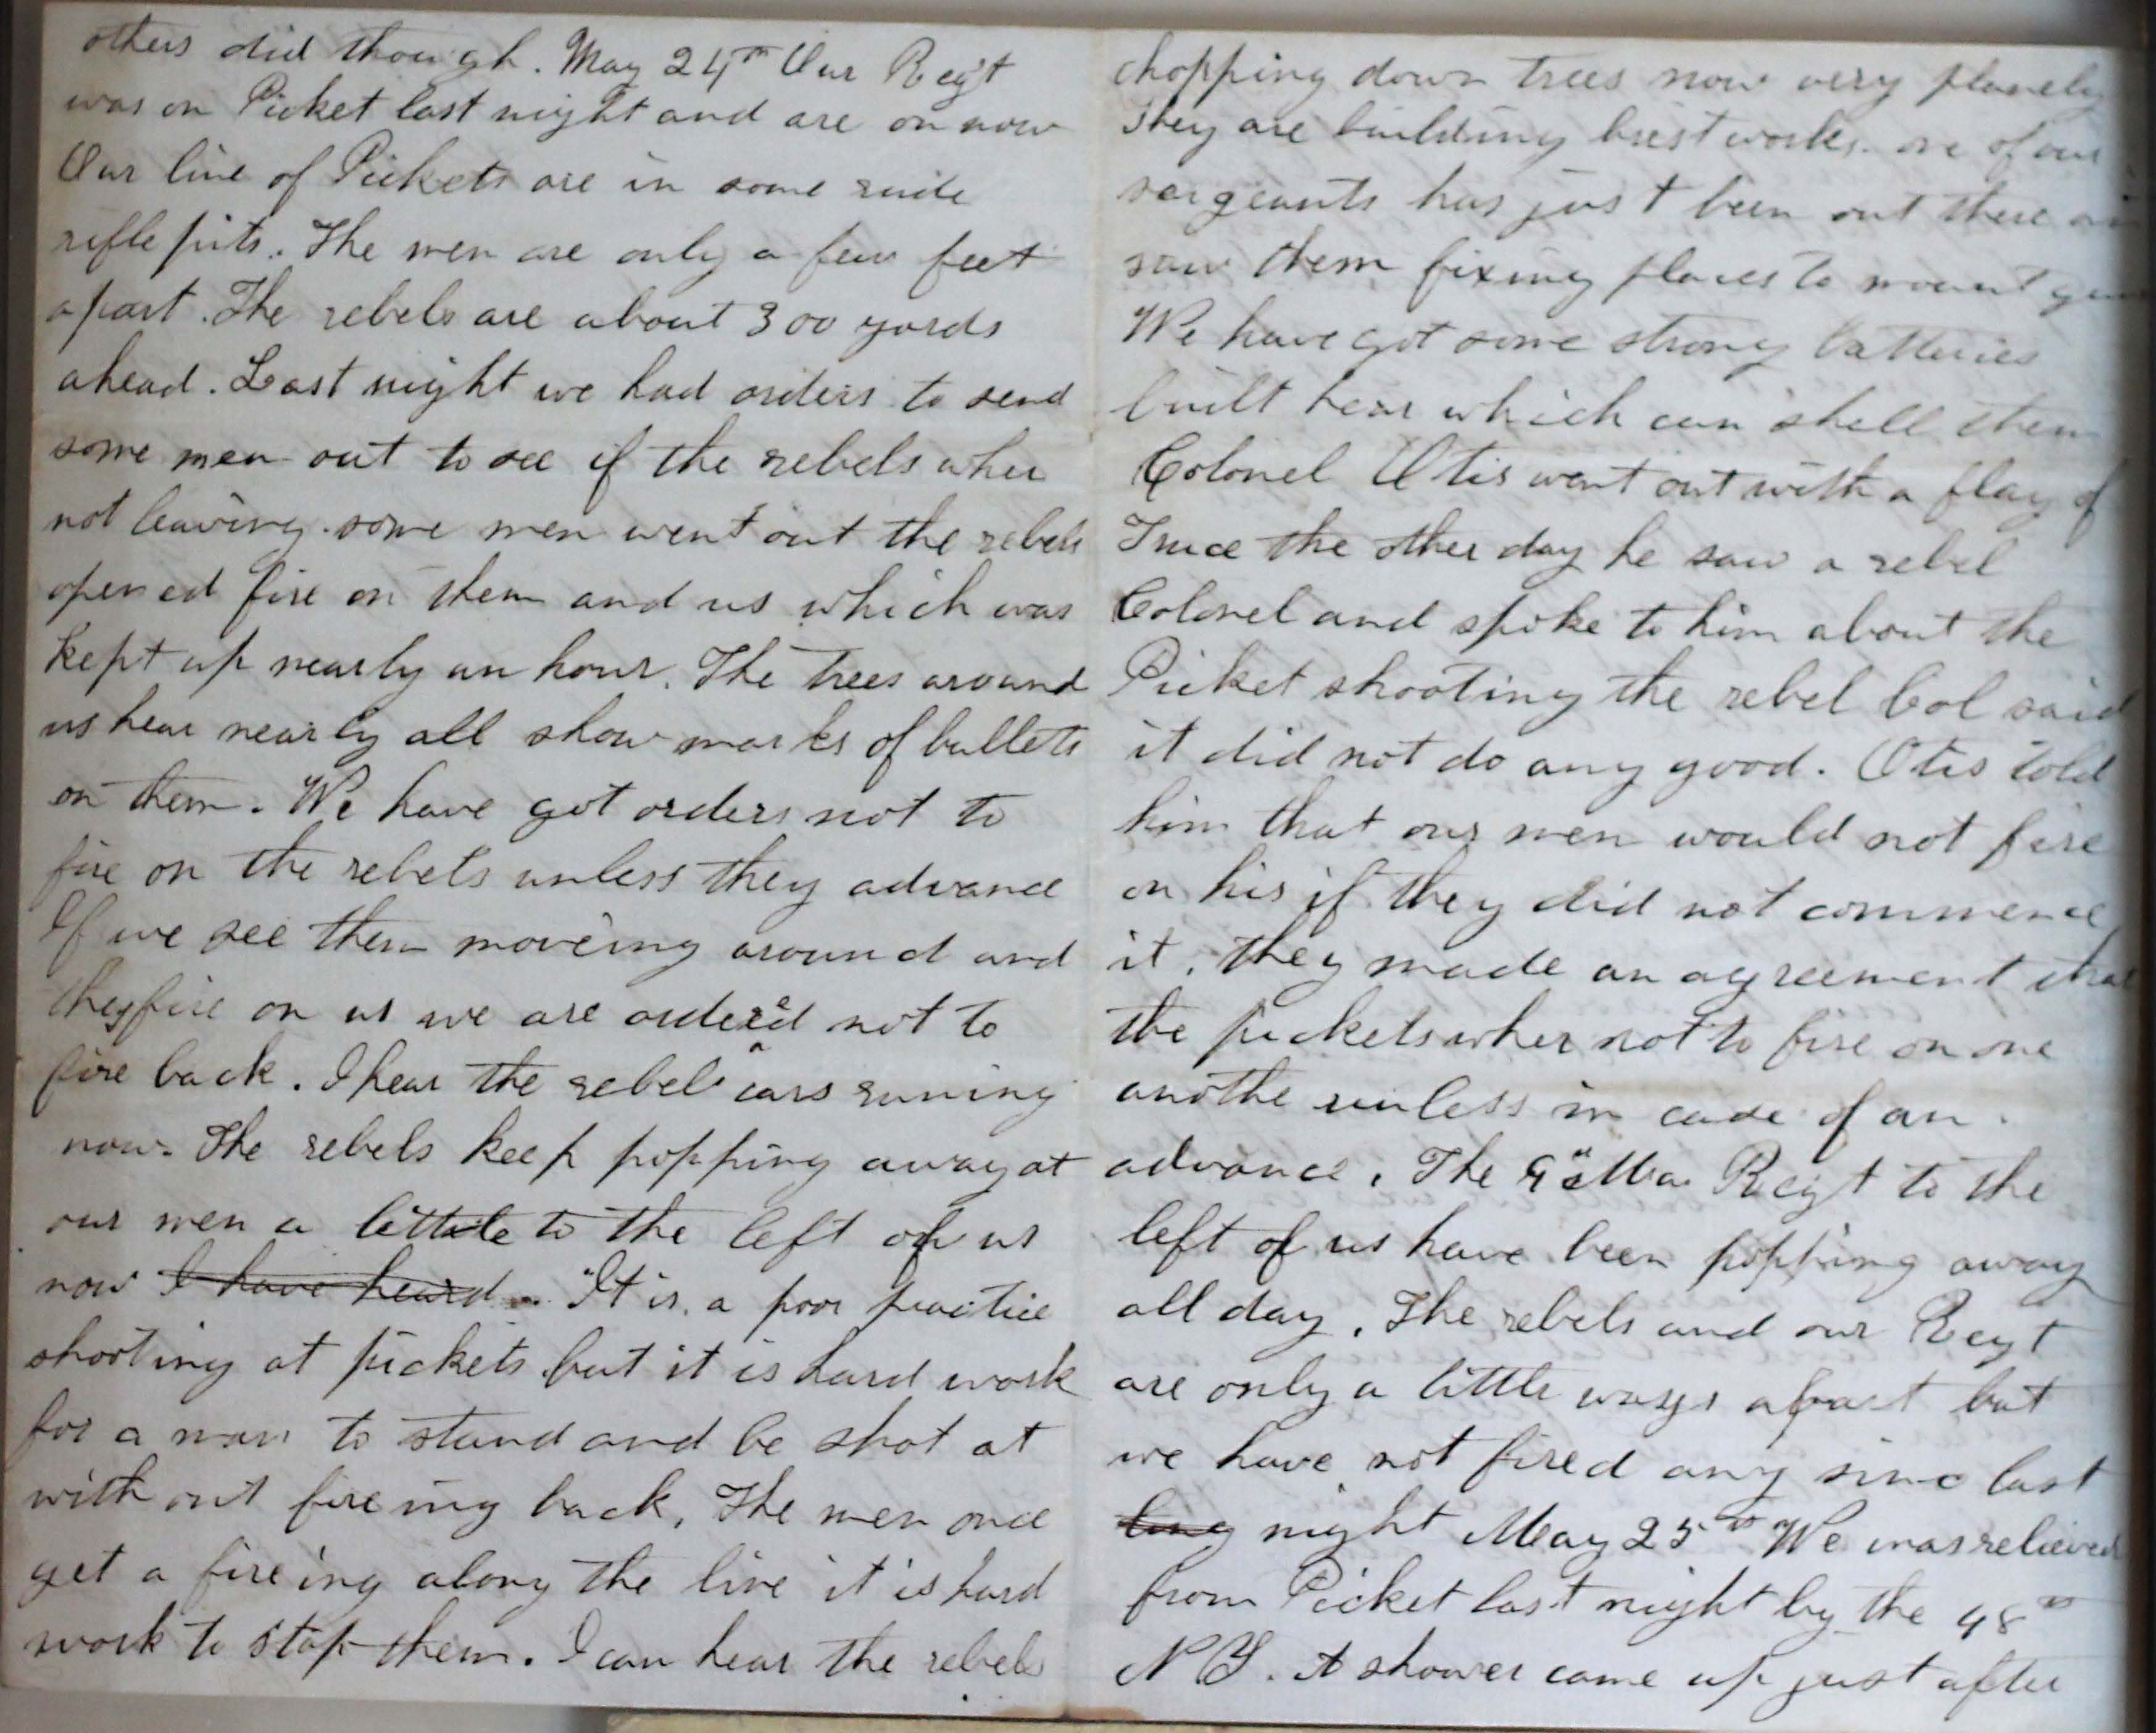 18640523 Elias Peck 10th CT Letter Page 2 and 3